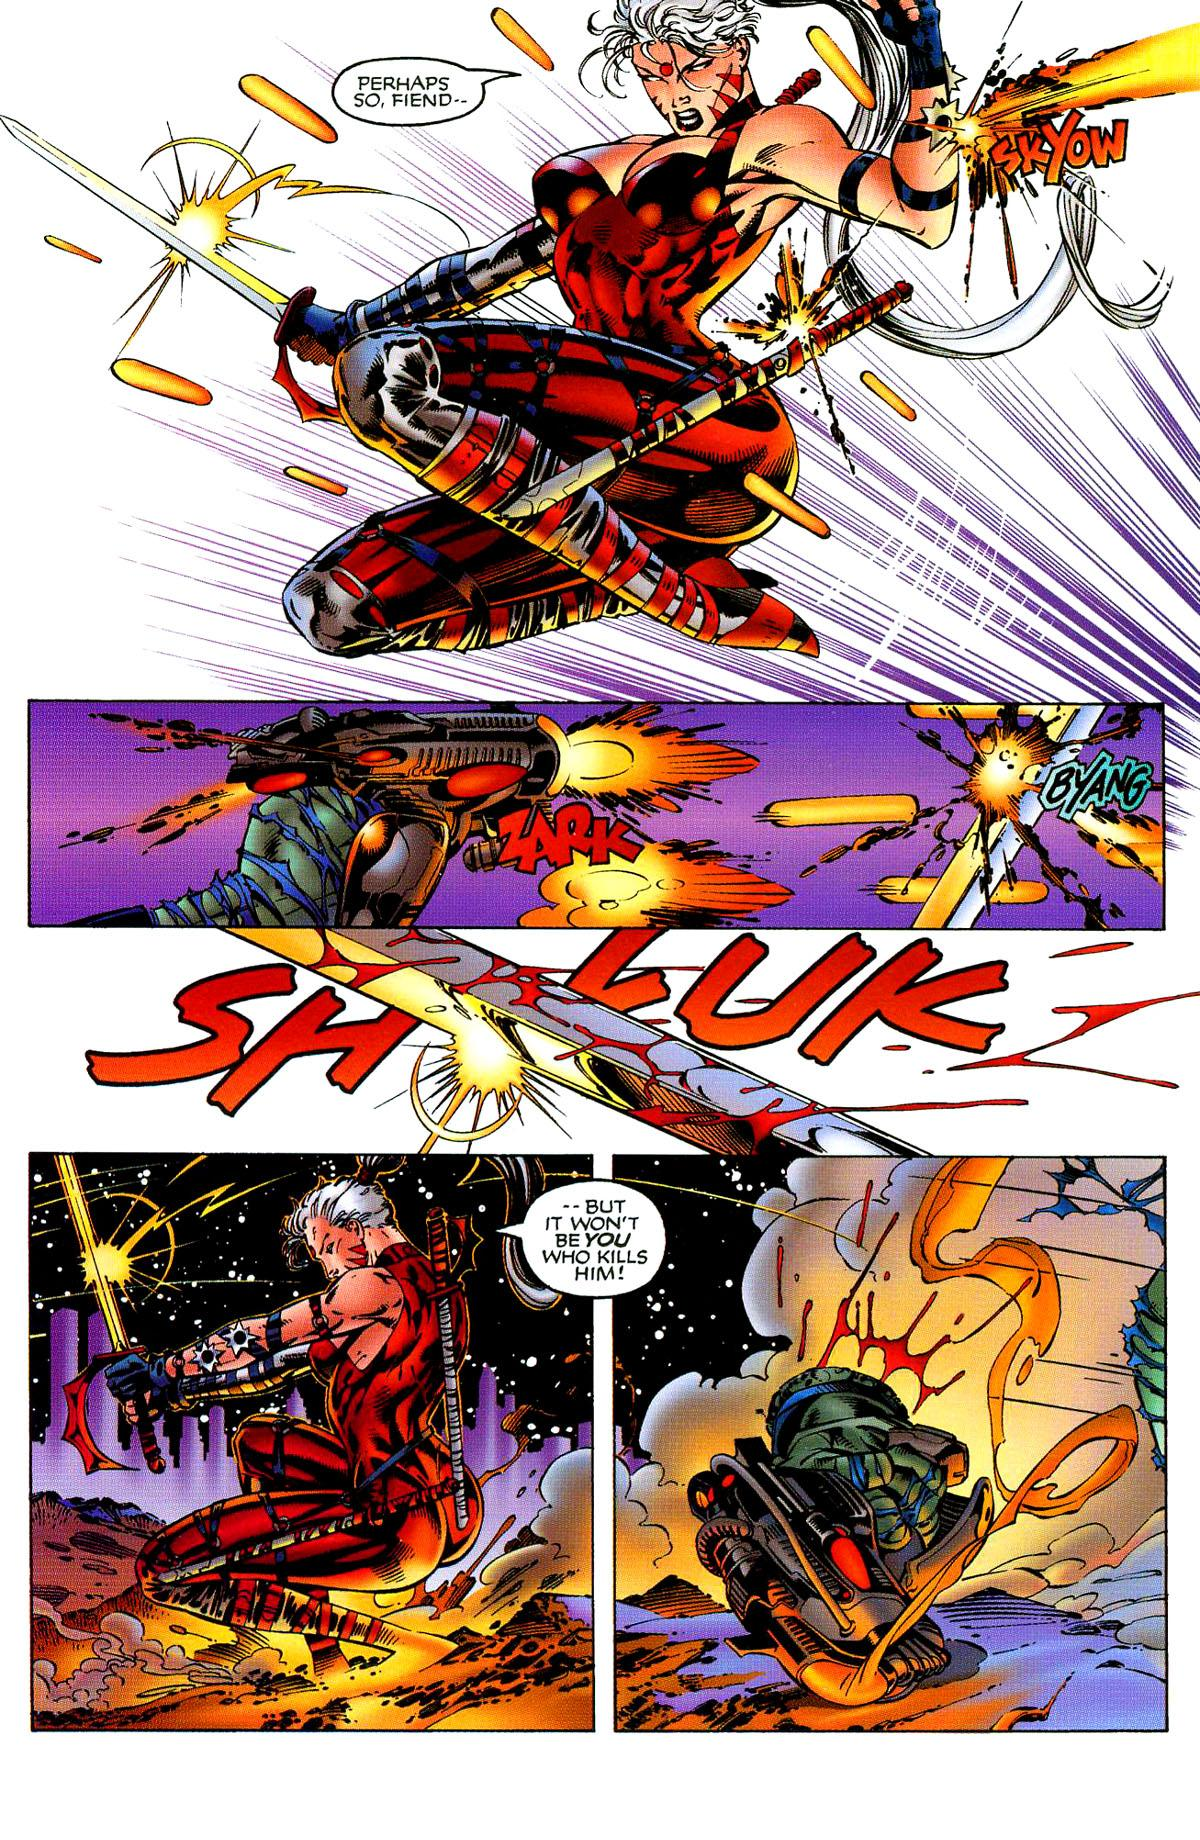 WildC.A.T.S. A Gathering of Eagles review